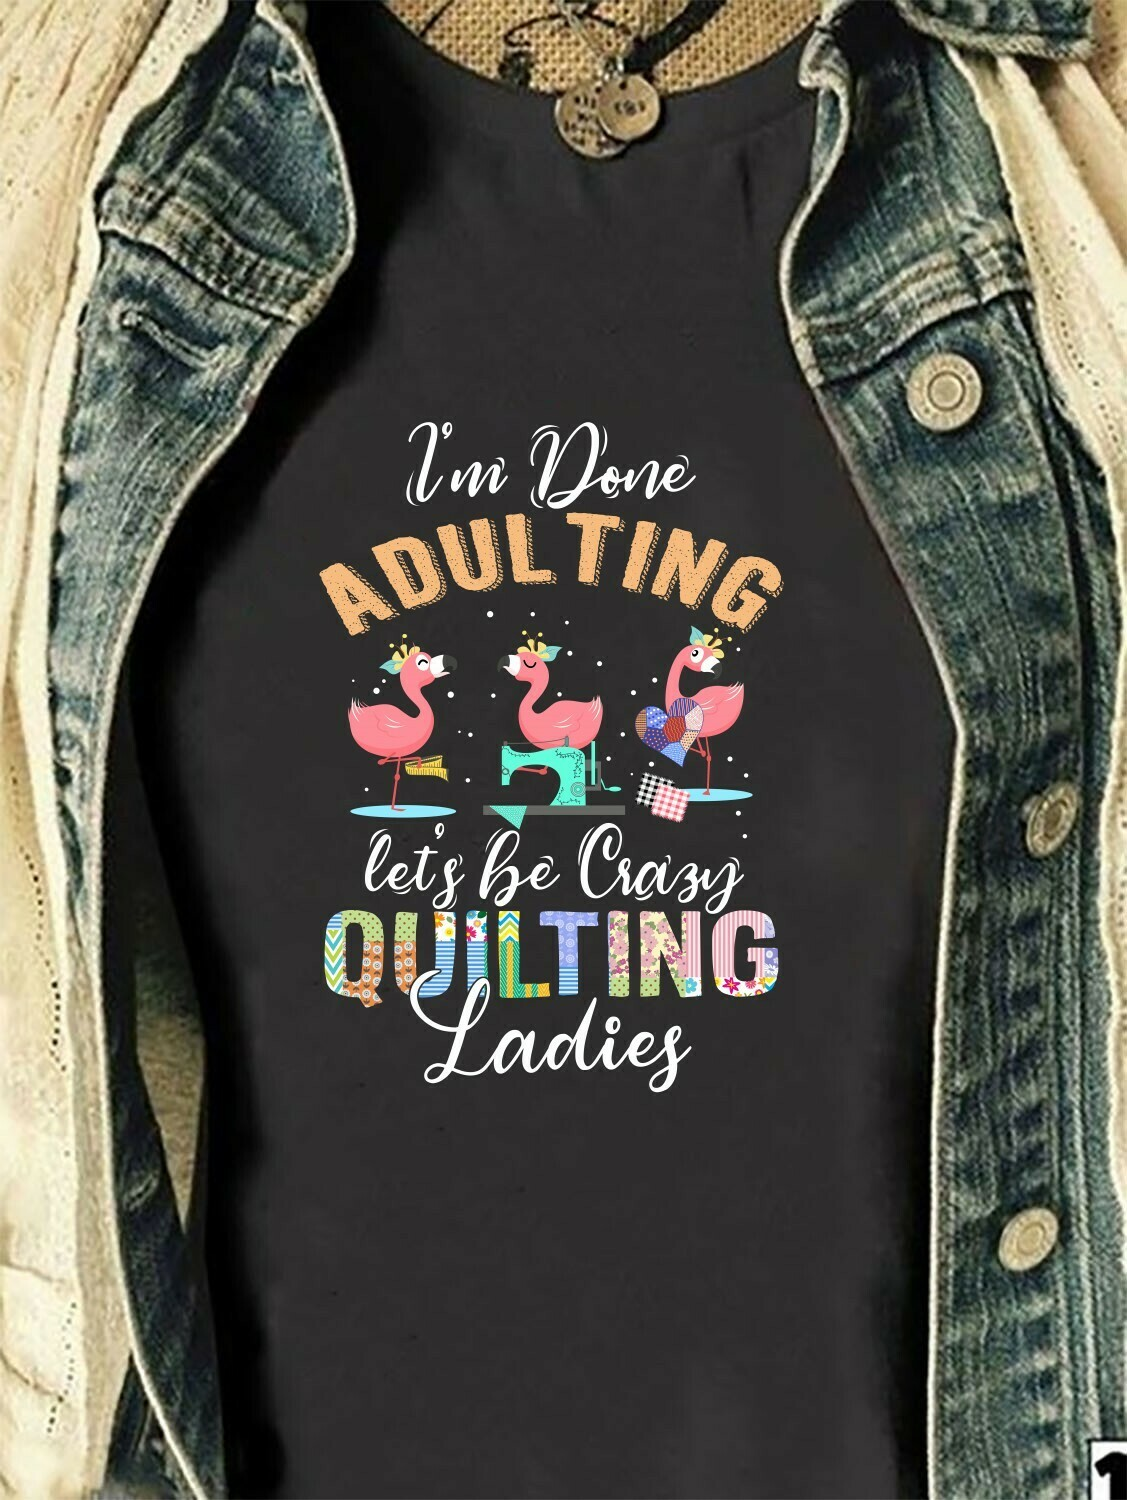 Flamingo I'm done adulting Let's be crazy quilting ladies Quilting Friends Sewing Patchwork Gift T-Shirt For Quilters Women Grandma Mom Nana Long Sleeve Sweatshirt Hoodie Jolly Family Gifts